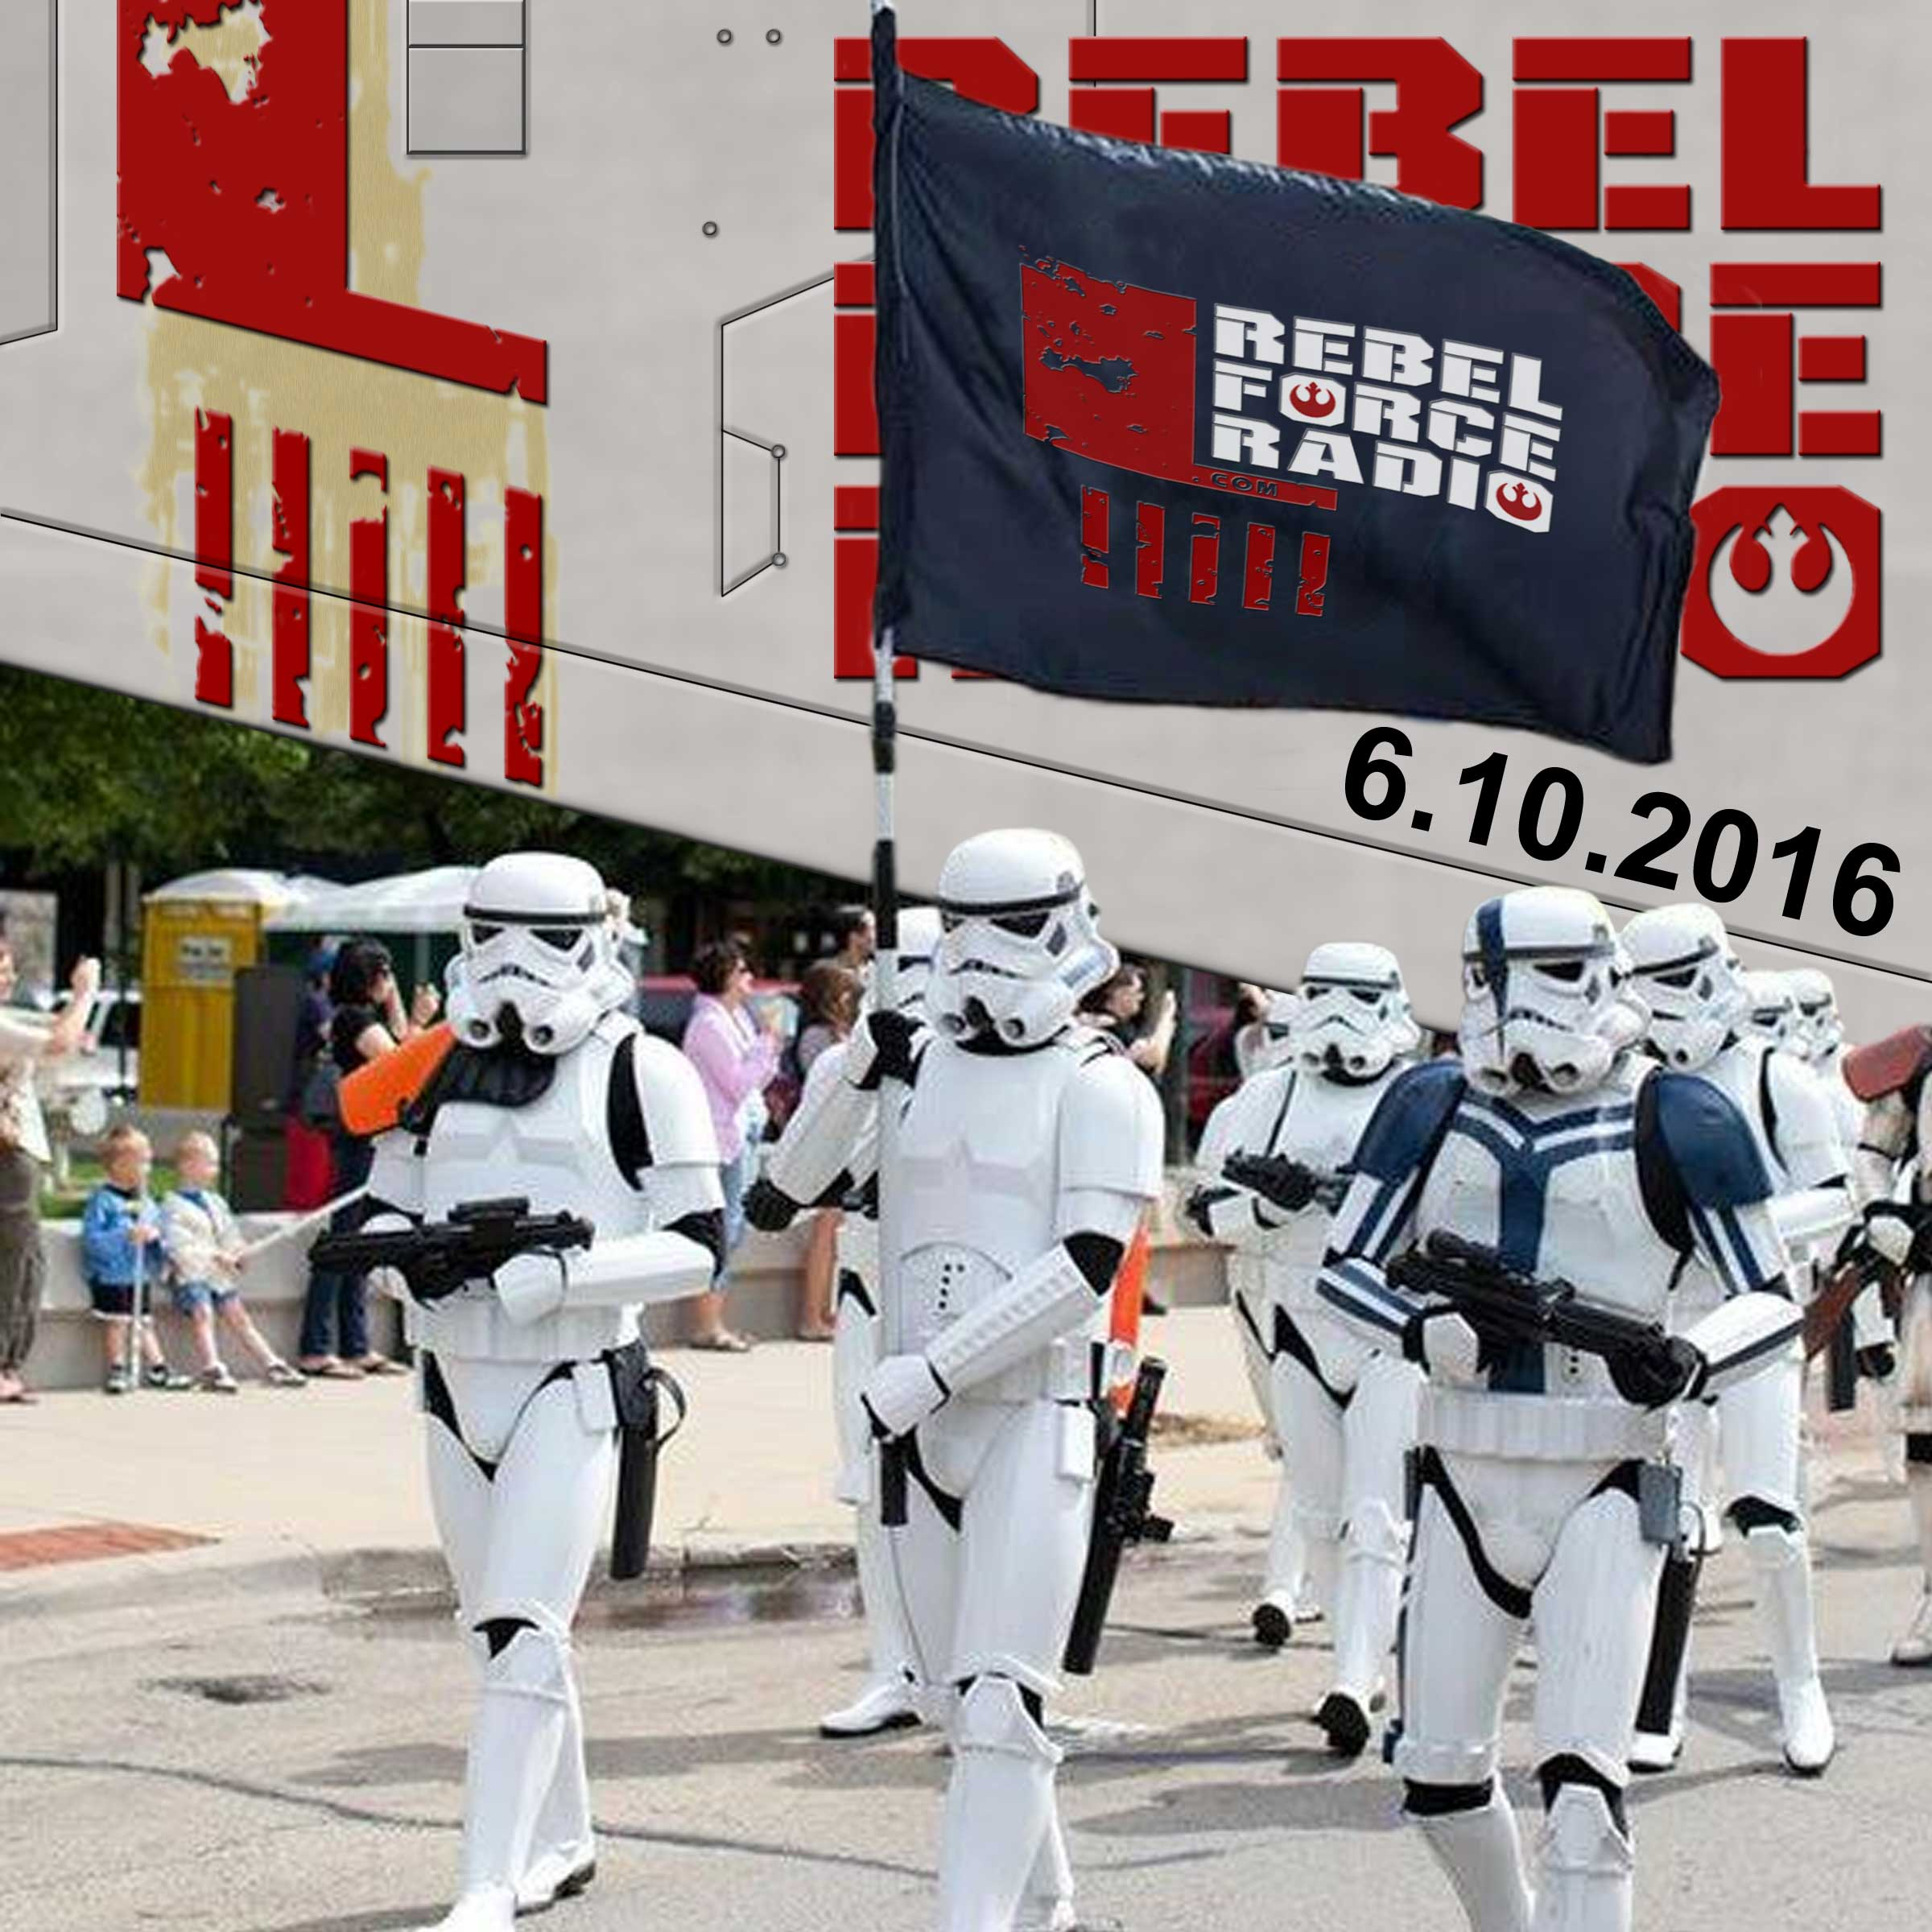 Rebel Force Radio: June 10, 2016